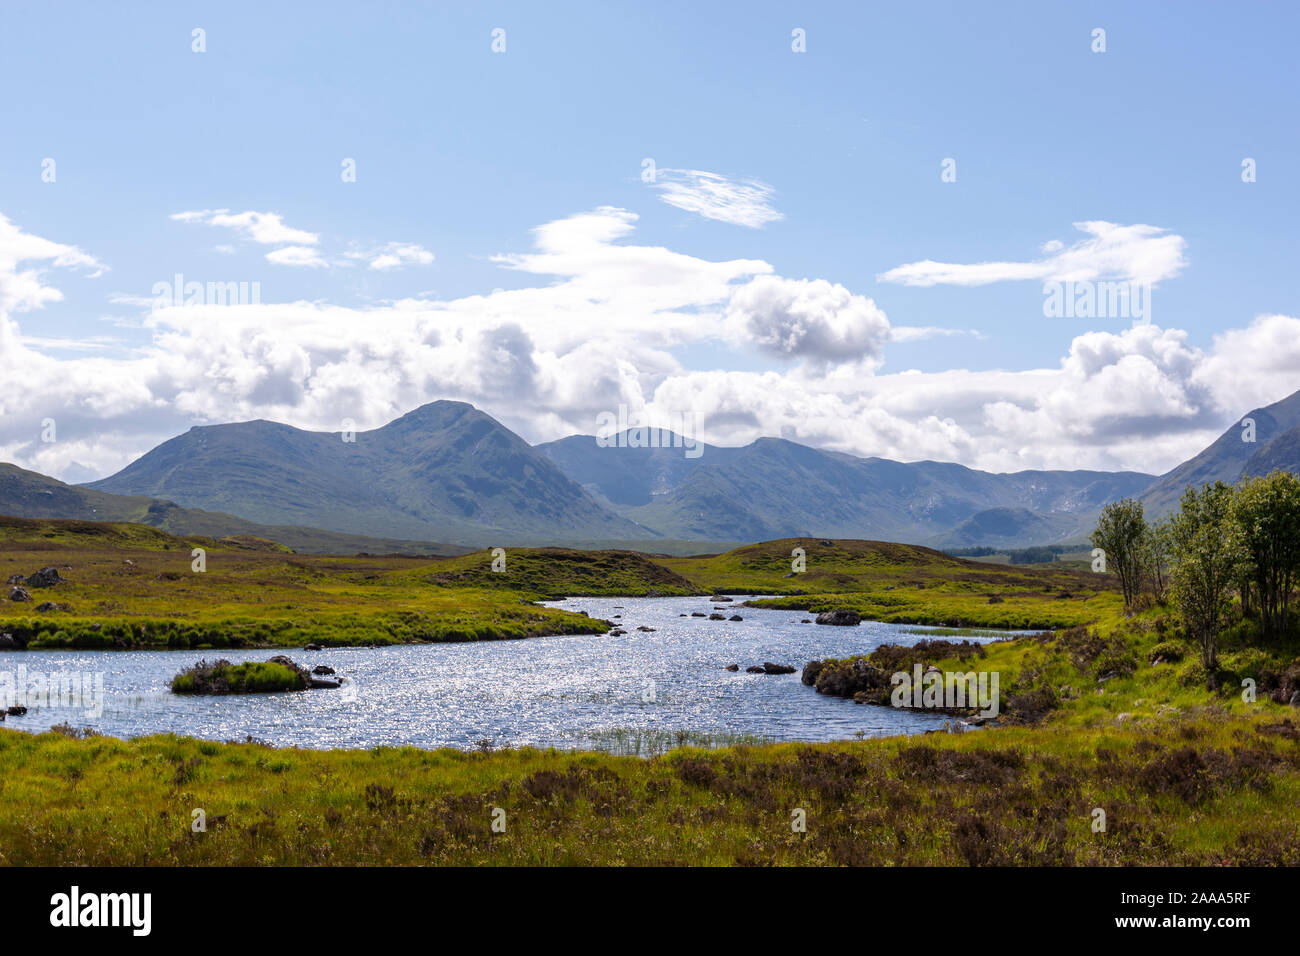 Loch Ba Viewpoint, Rannoch Moor, Highland, Scotland, UK Stock Photo